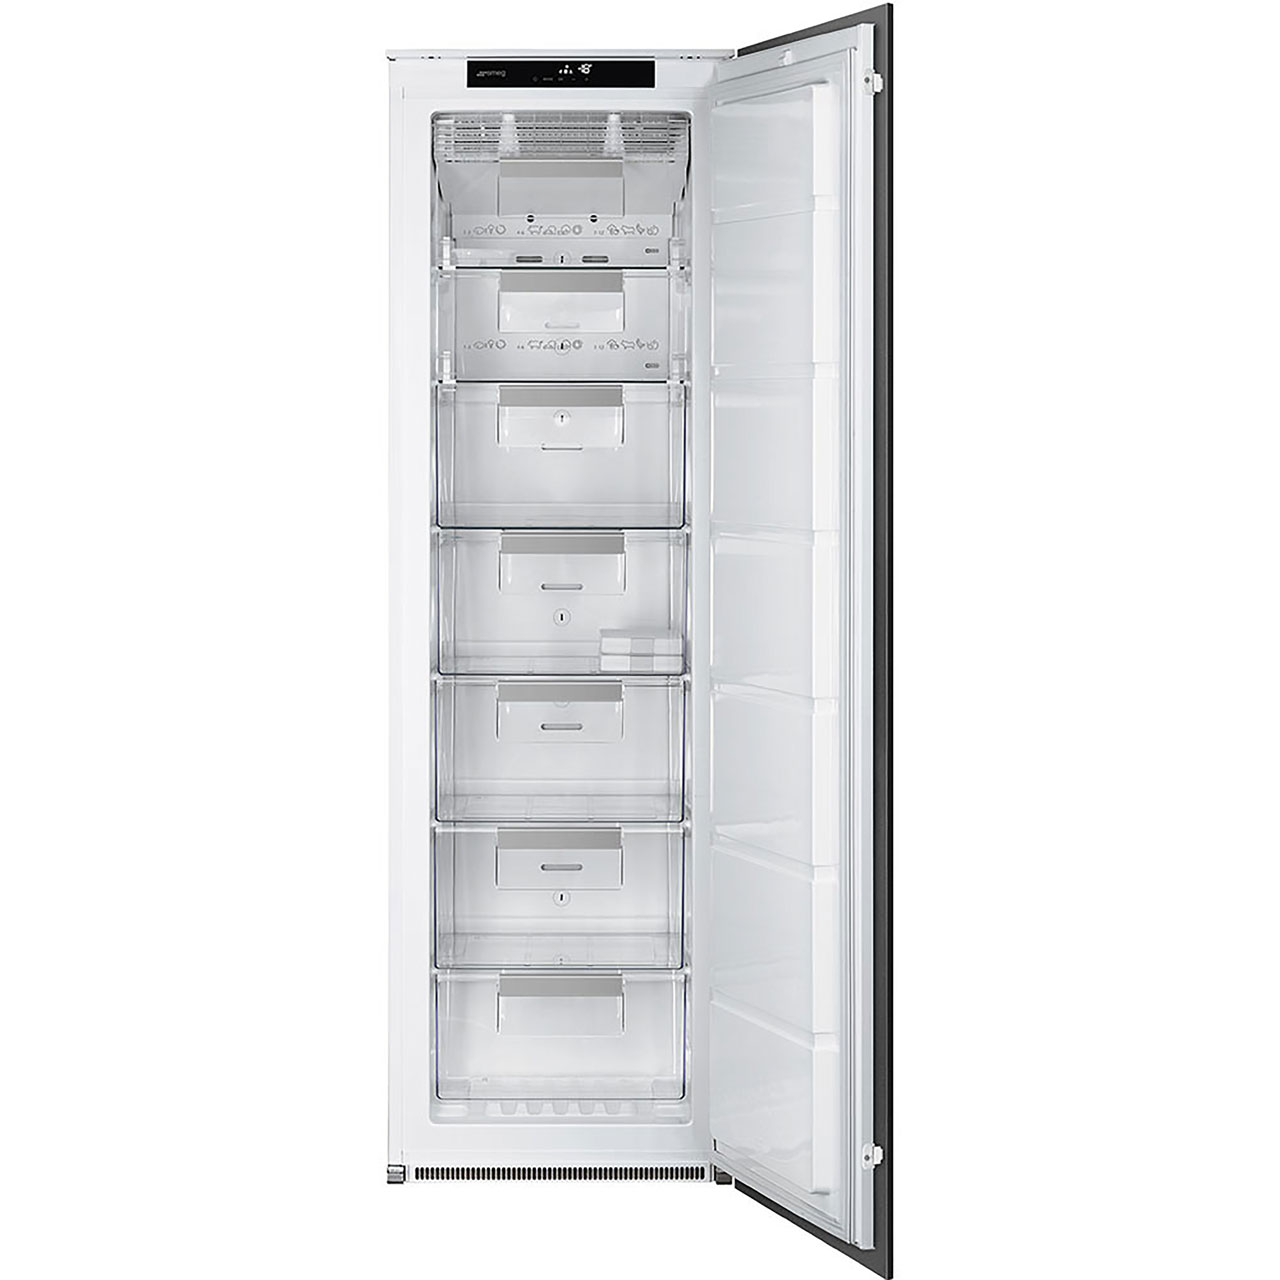 Smeg UKS7220FNDP1 Integrated Frost Free Upright Freezer review